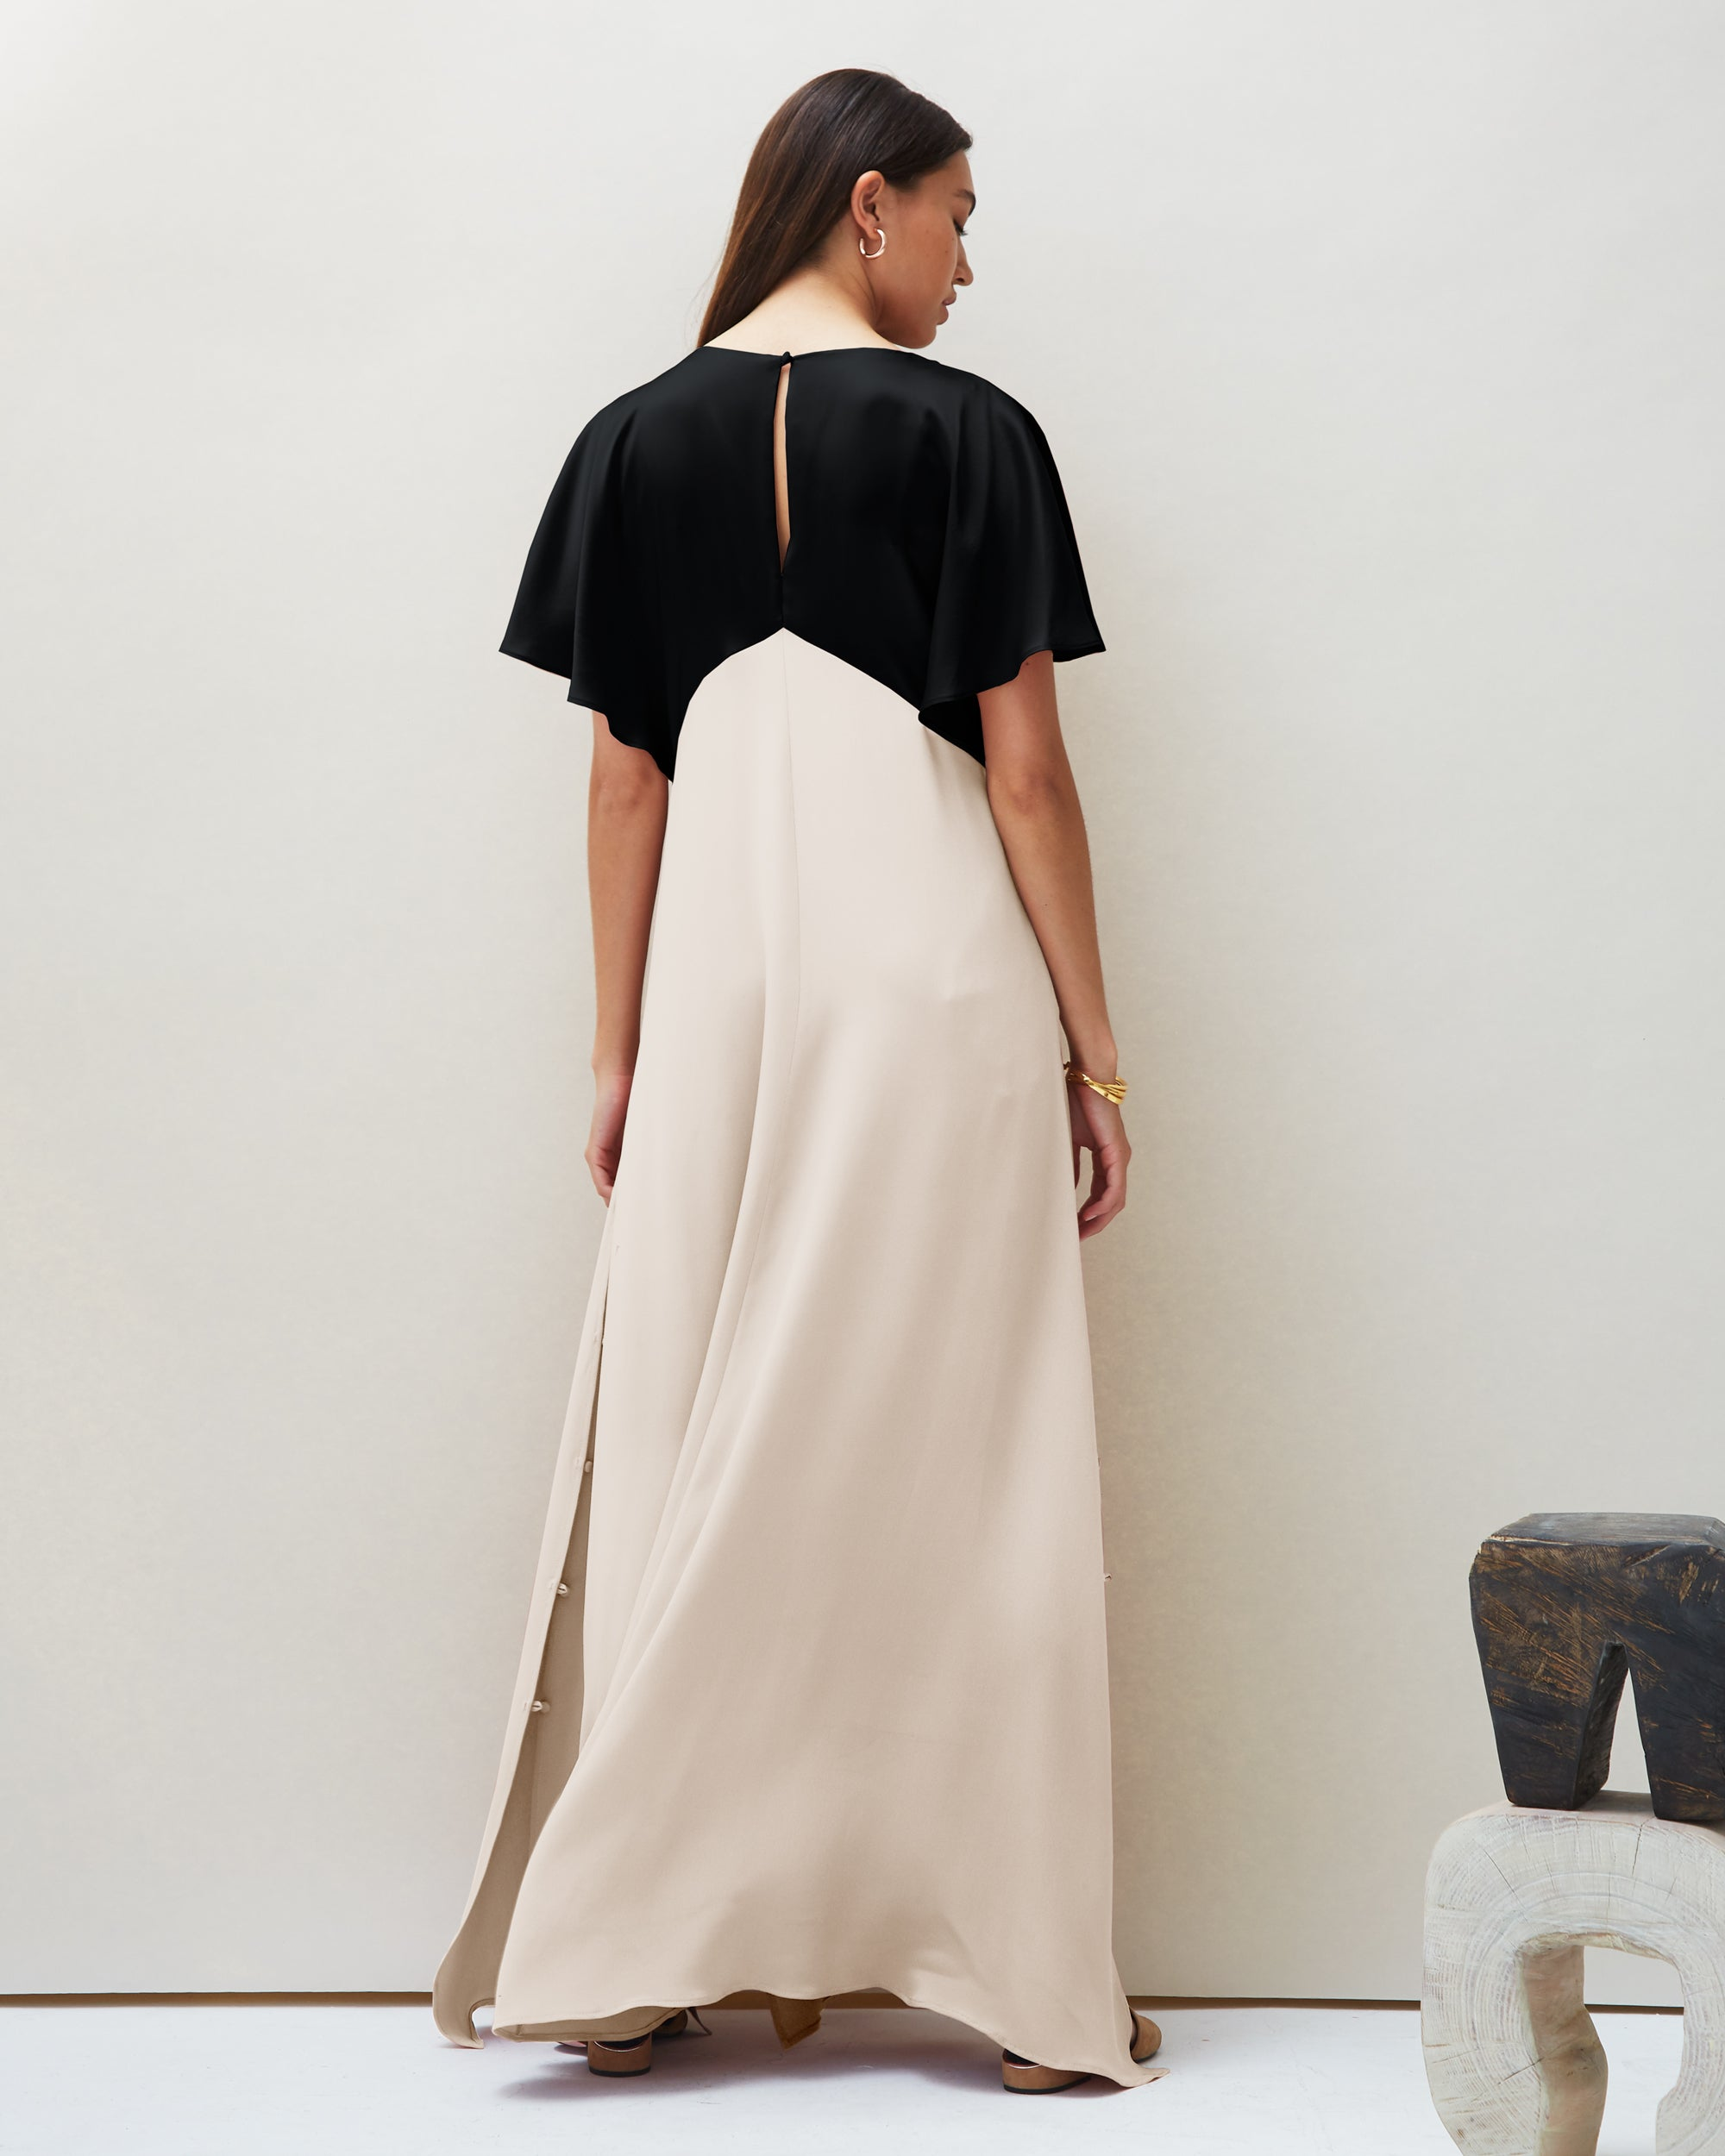 Seta Gown in Black & Ivory | Made-to-order